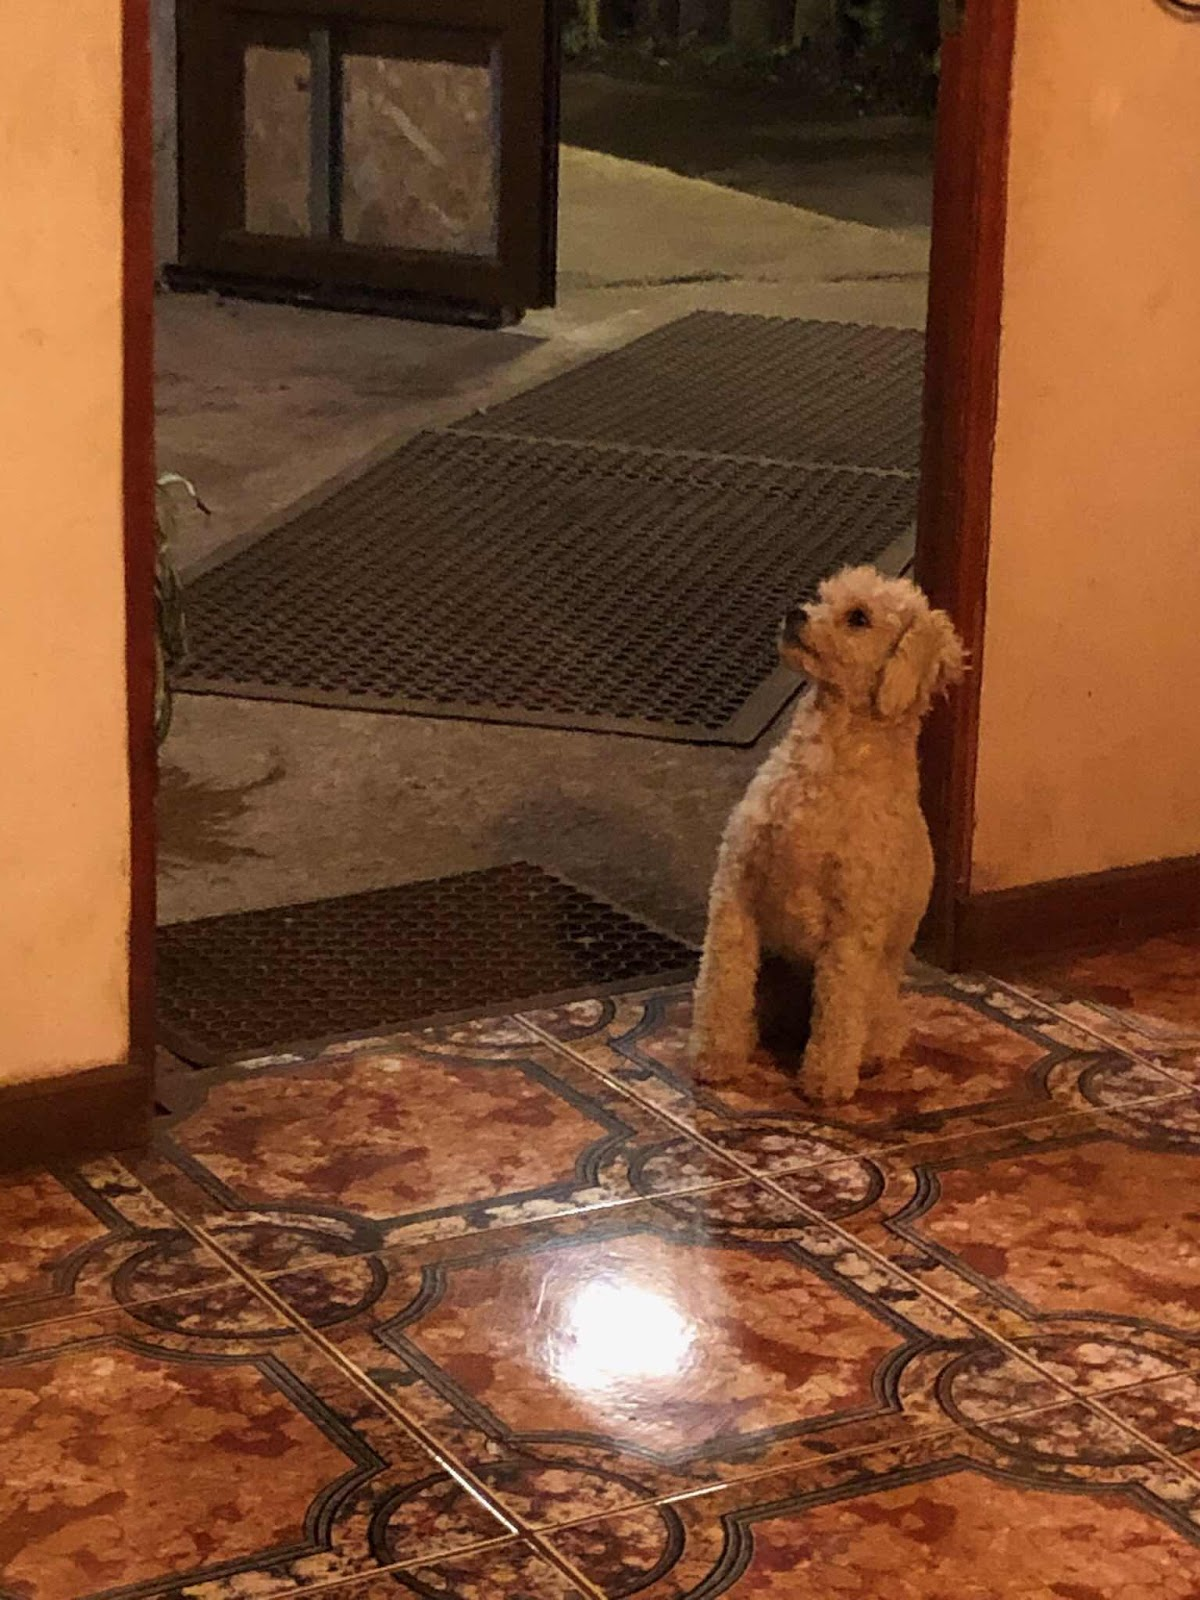 one of the wild dogs in Chile waiting at the restaurant door for treats